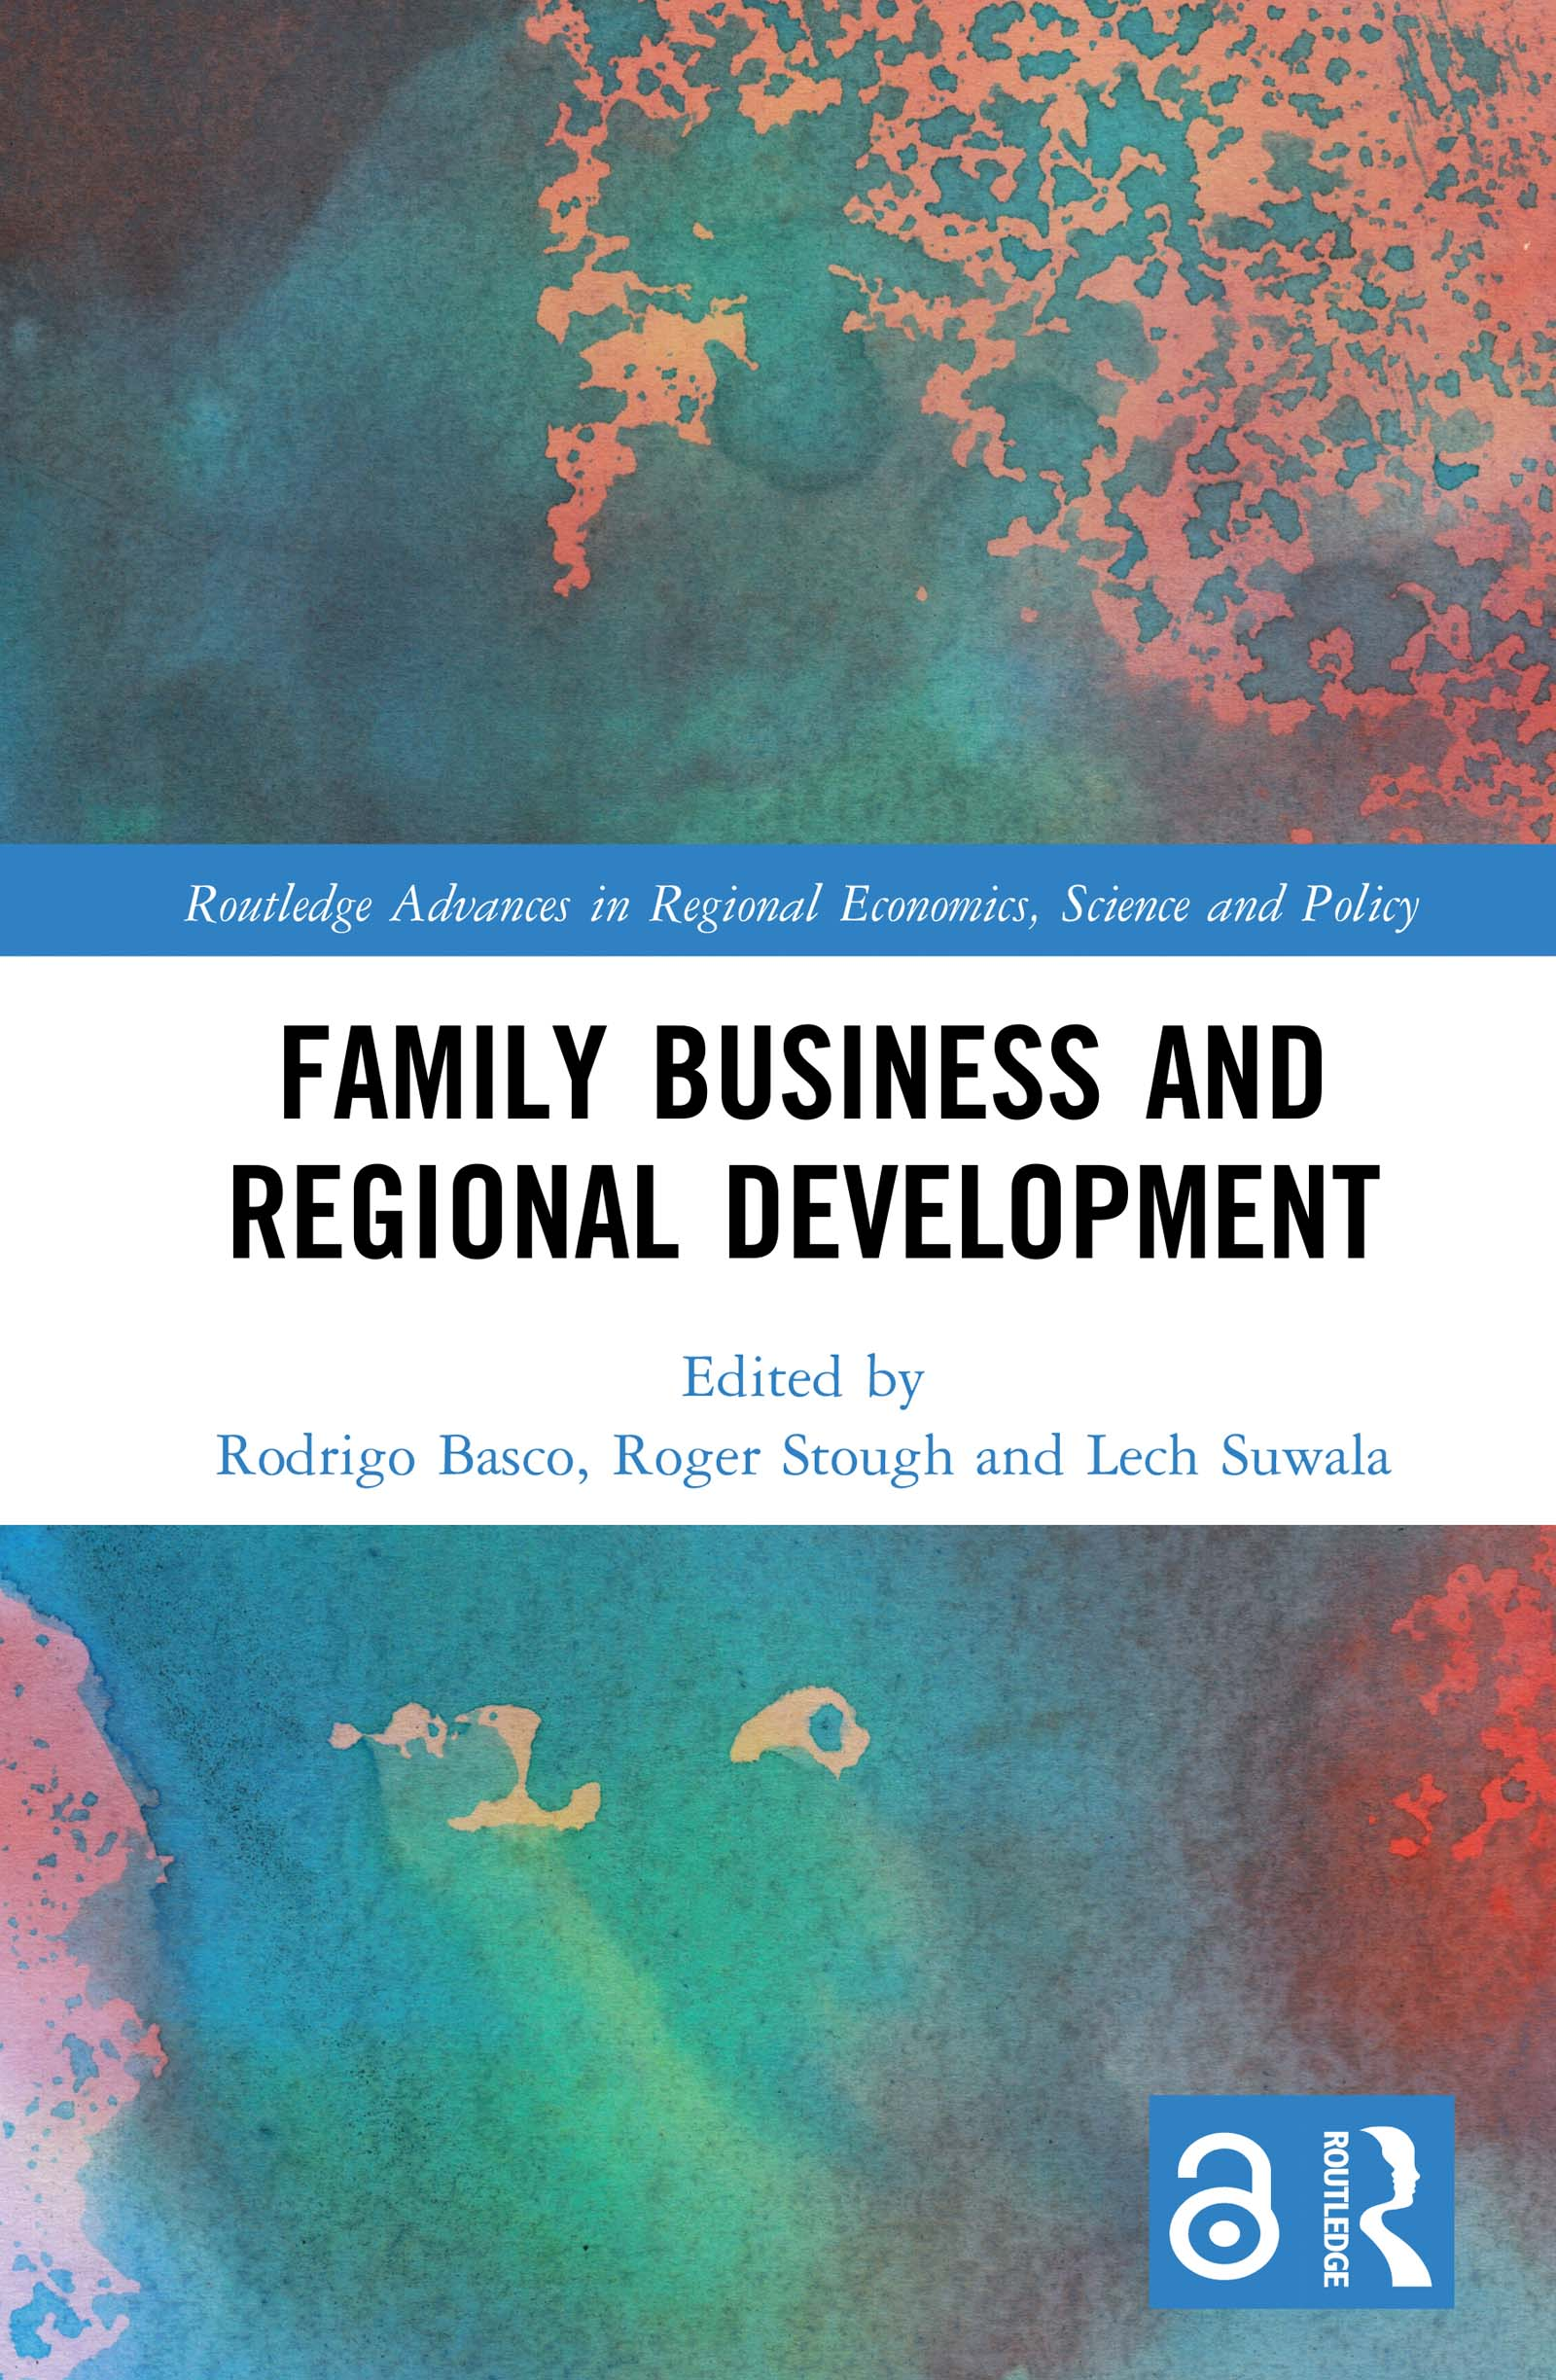 Family firms and regional development